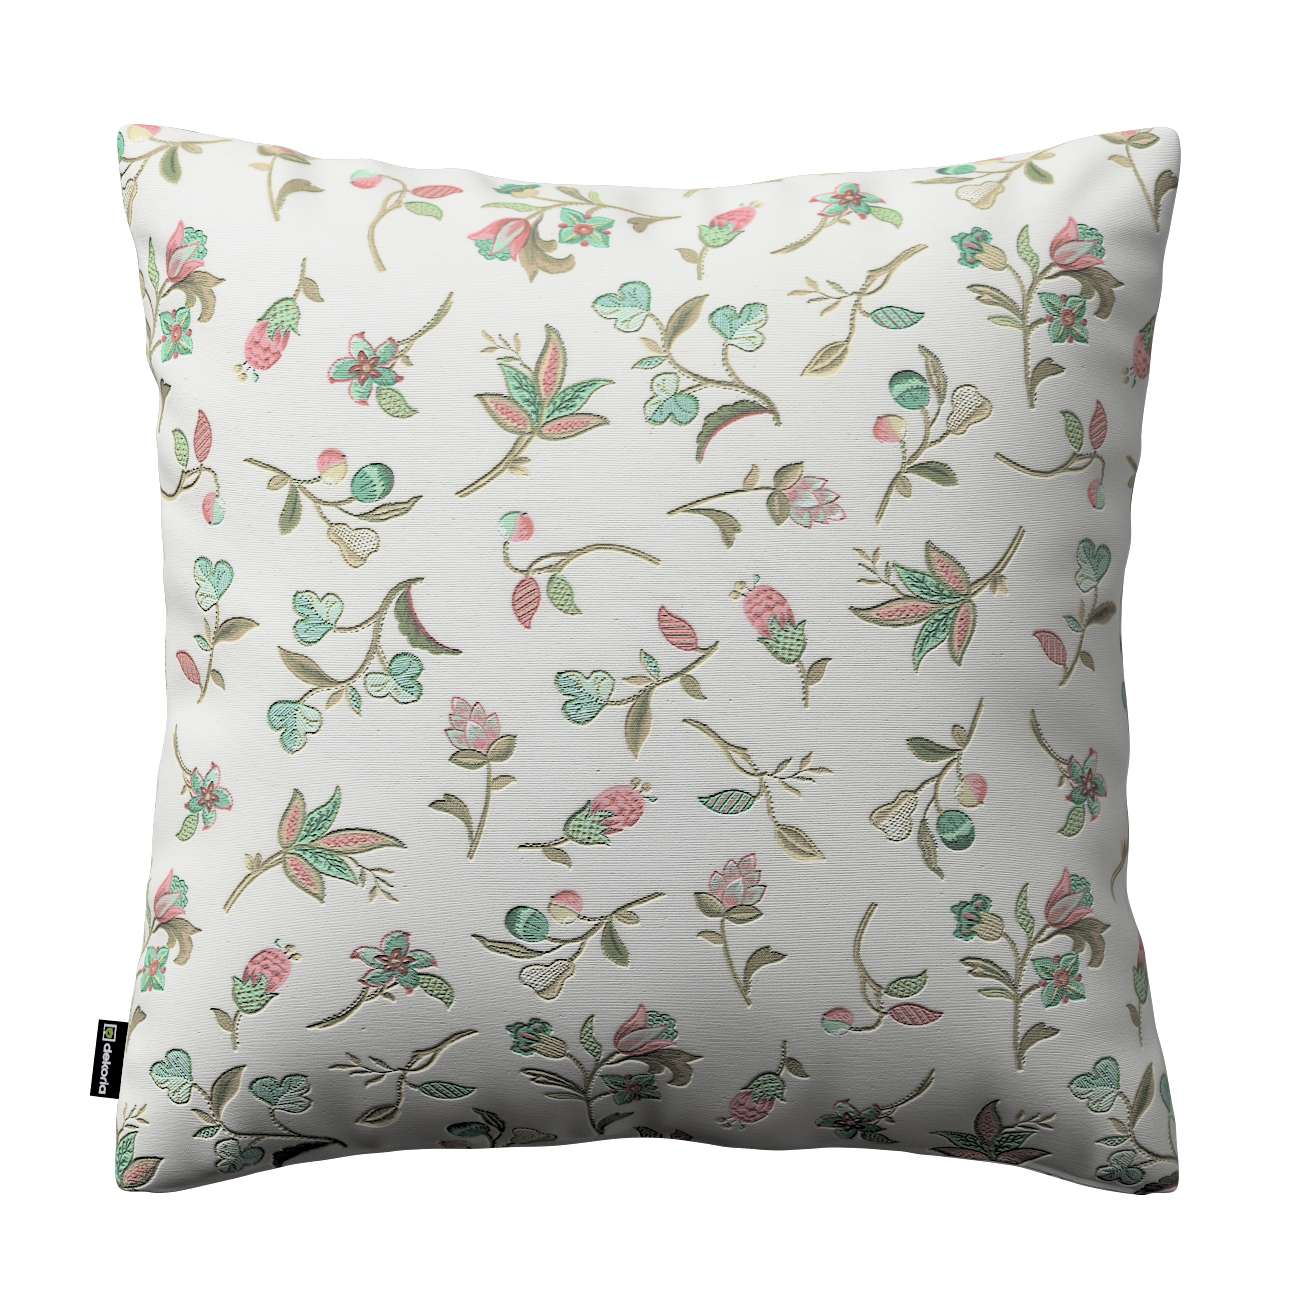 Kinga cushion cover 43 x 43 cm (17 x 17 inch) in collection Londres, fabric: 122-02